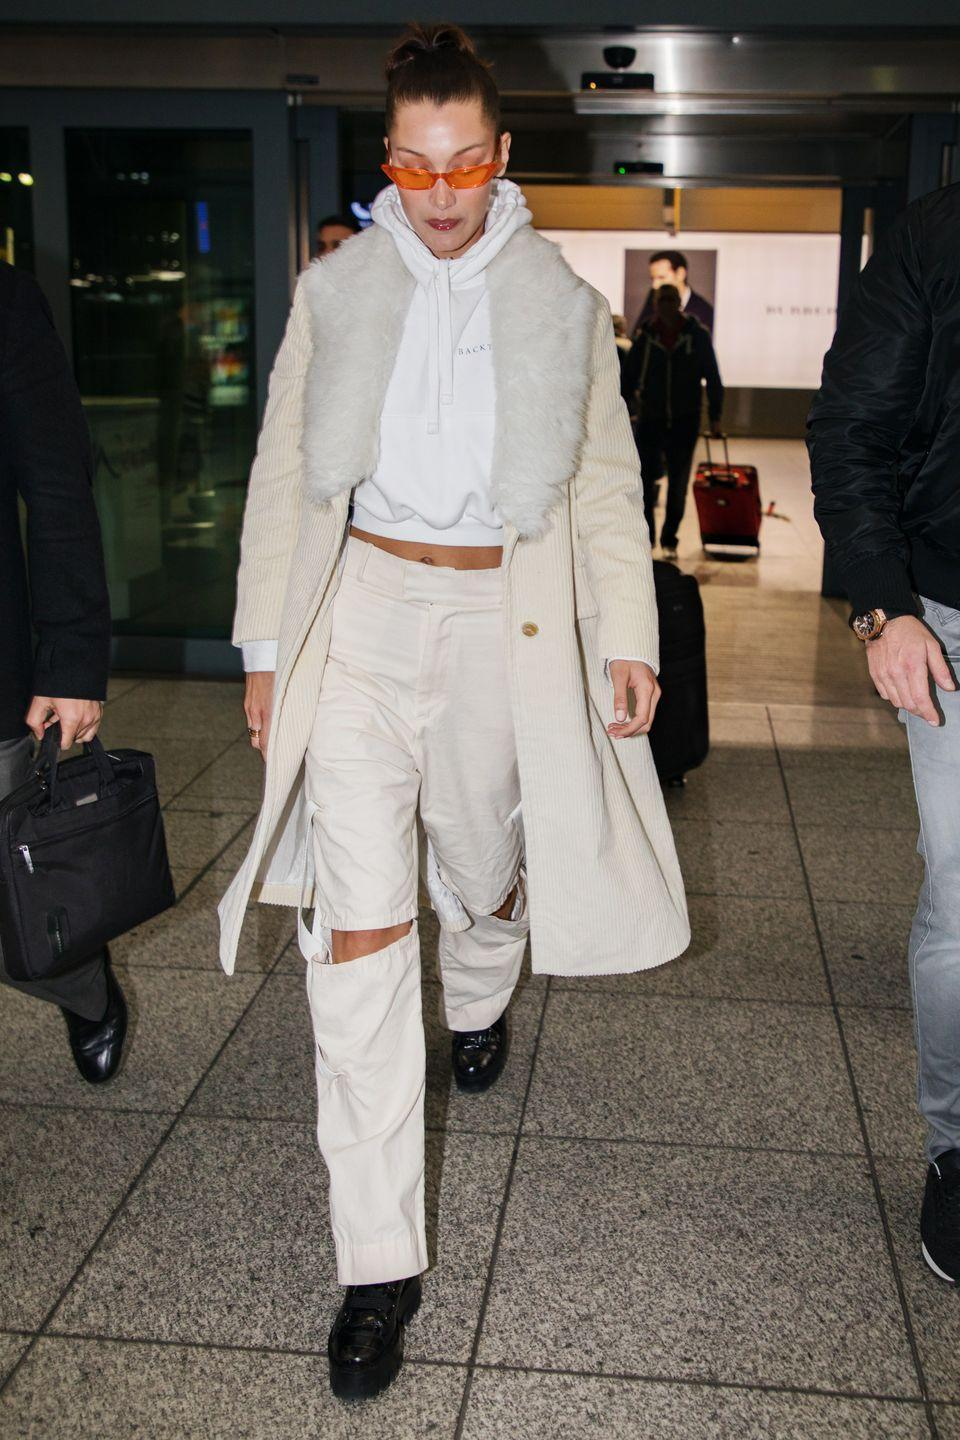 <p>In a cream corduroy coat with a fur collar, cropped hoodie, white ripped jeans by Private Policy, black creepers, and orange sunglasses at the airport in Dubai.</p>